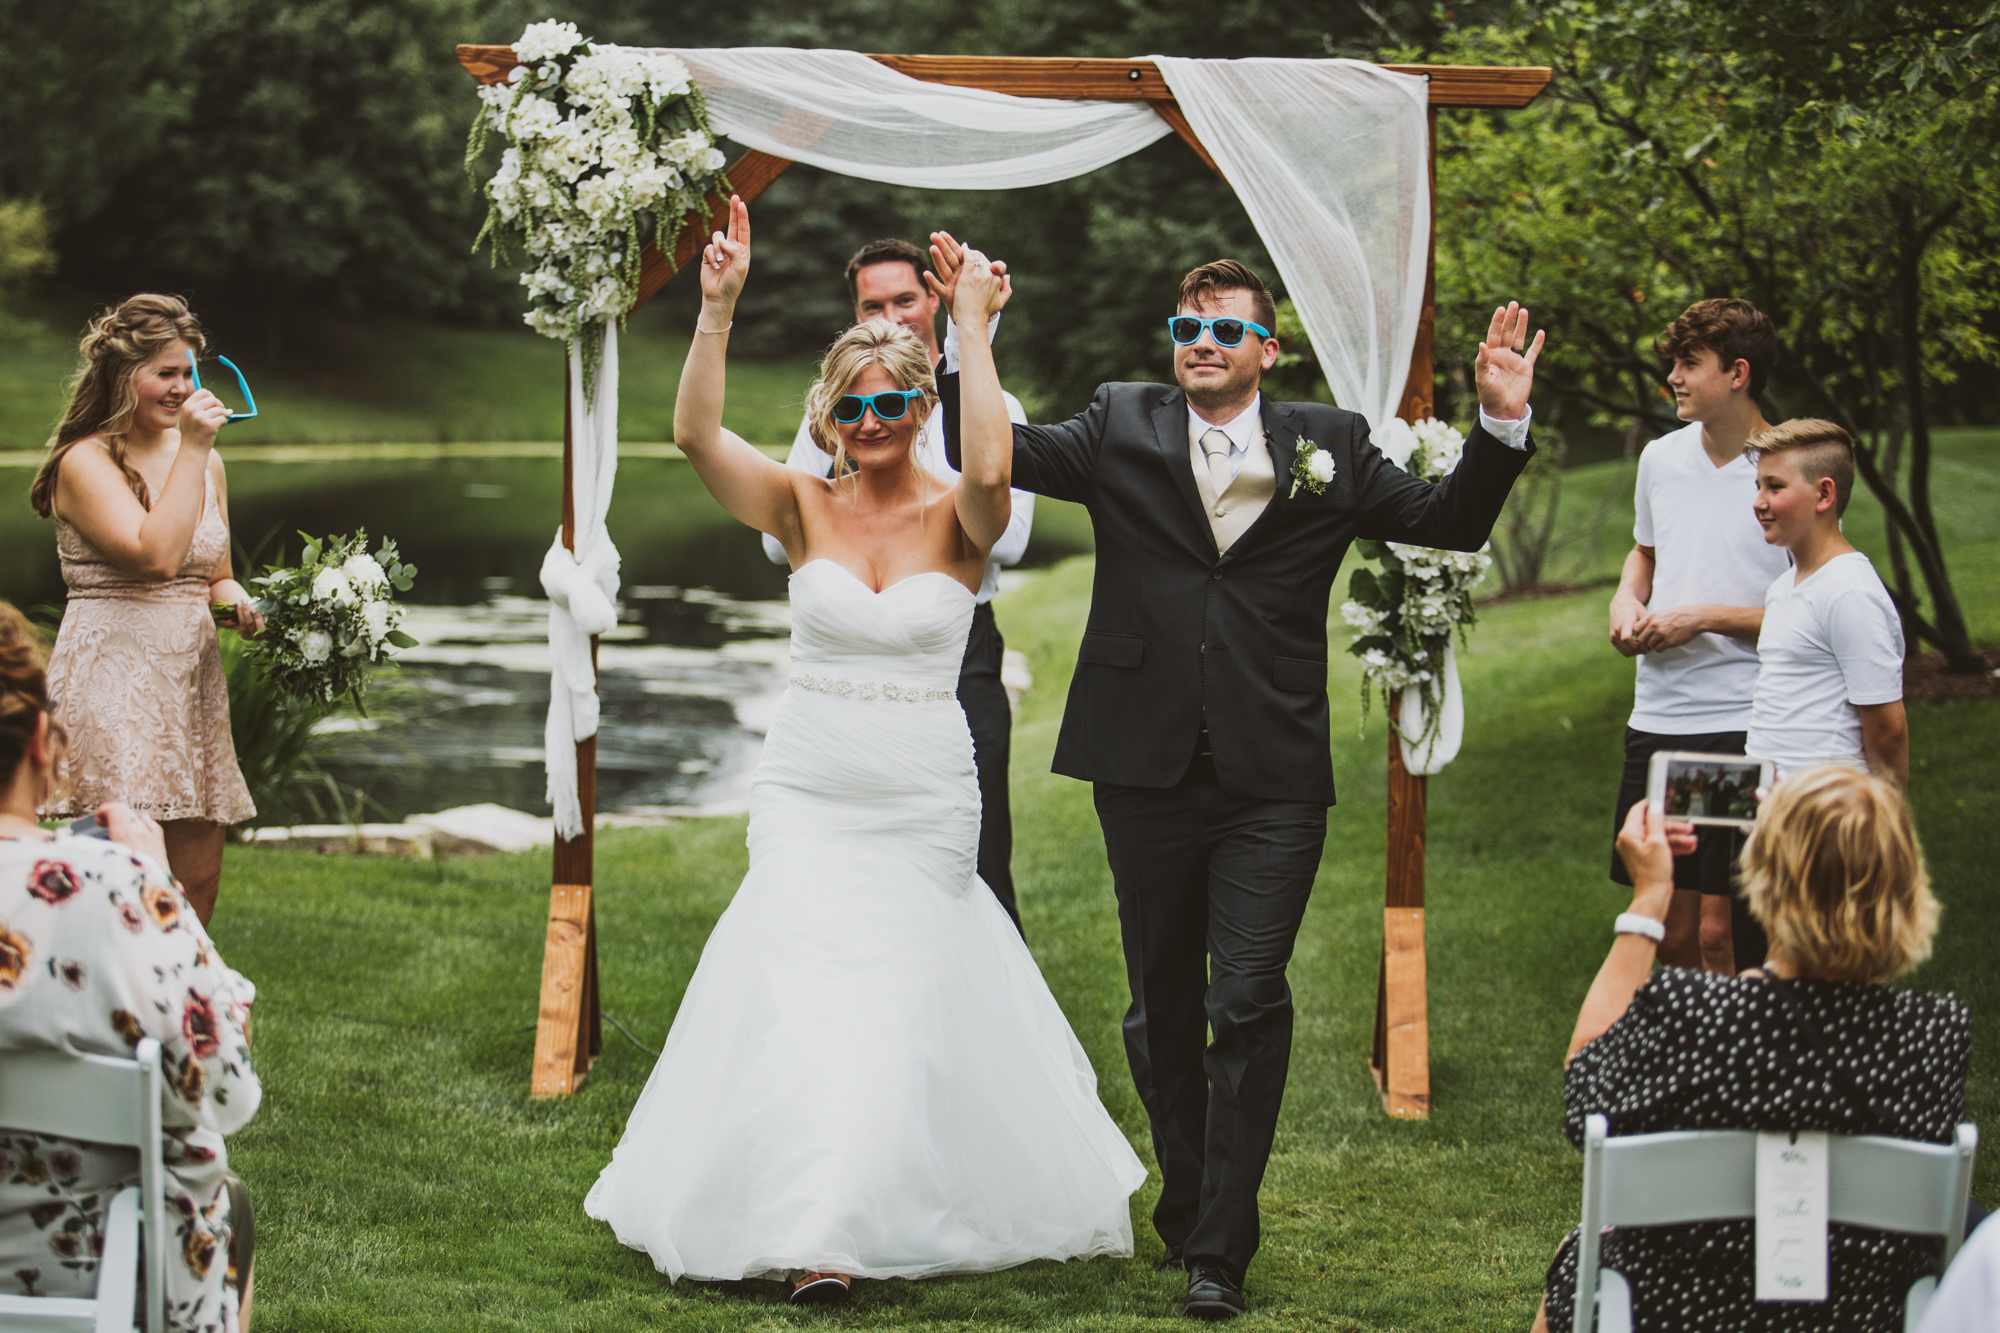 Find Best Chicago Wedding Photographer | A Wedding You'll Never Forget